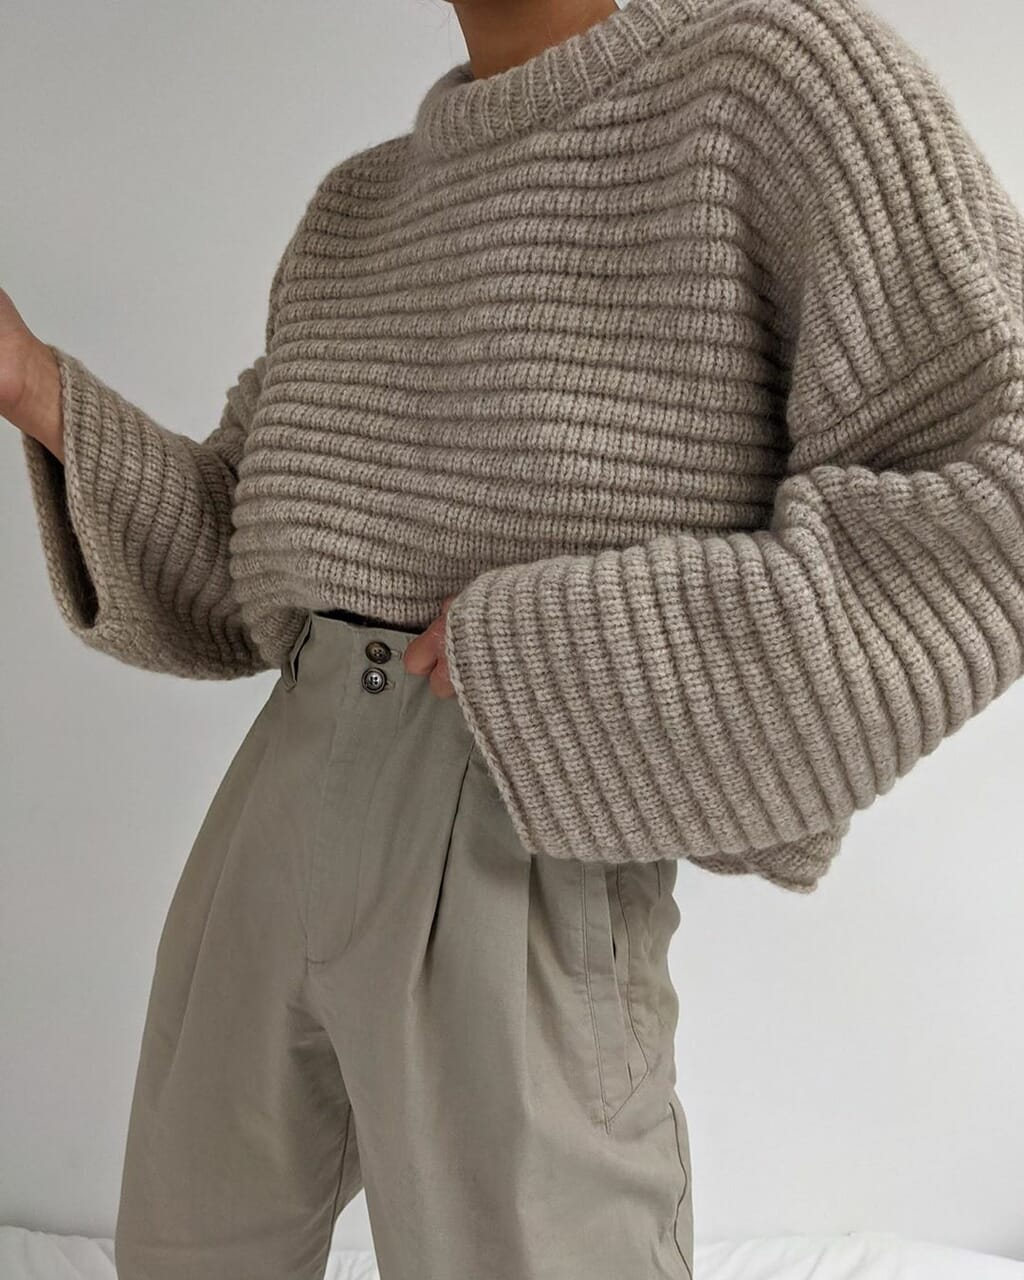 blogger, fashion, and knitwear image